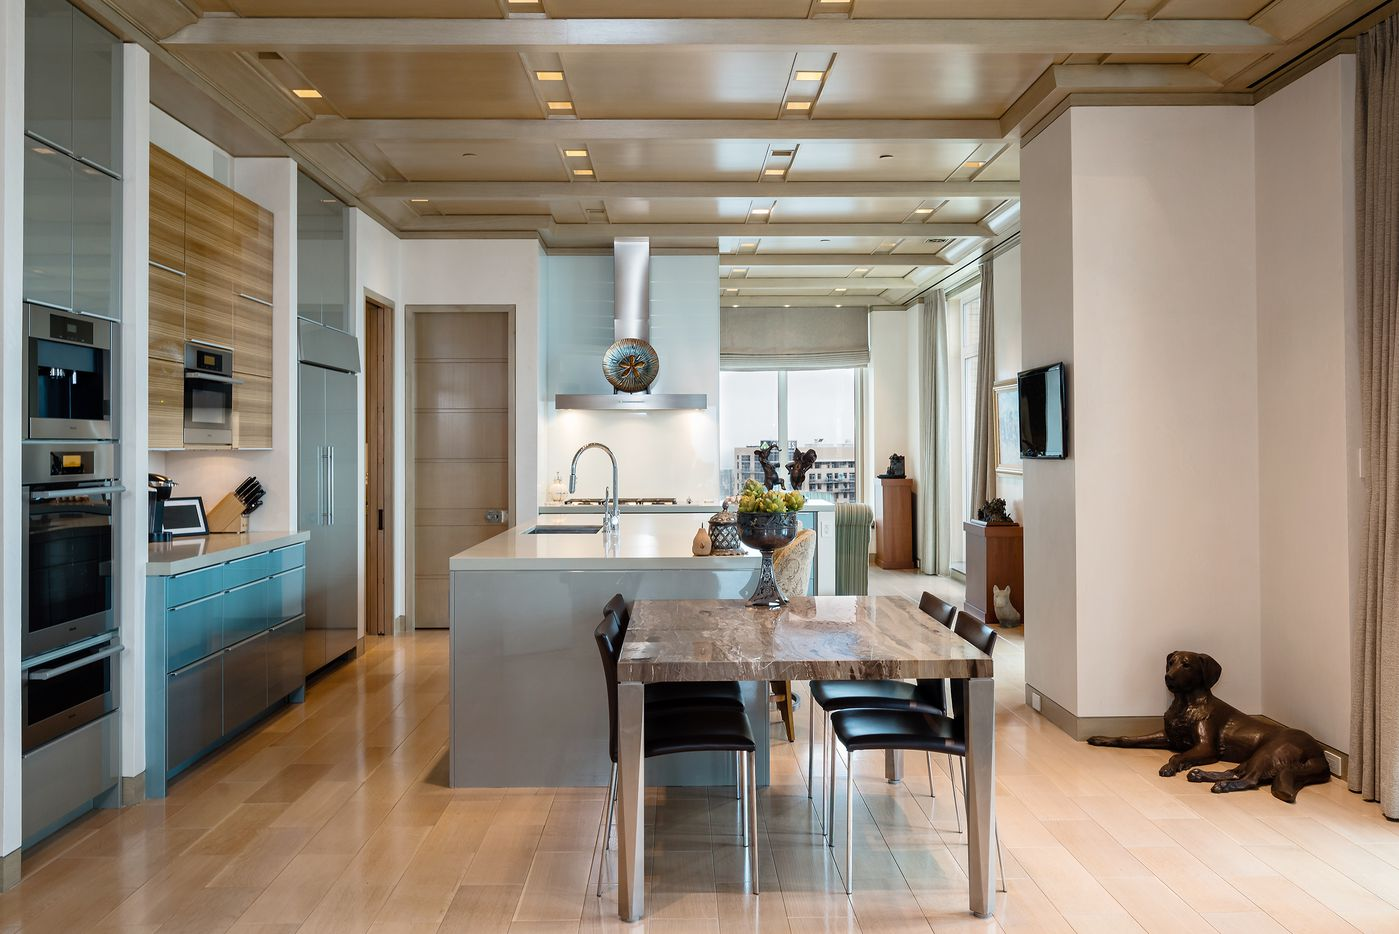 Take a look at this penthouse condo at The Ritz-Carlton Residences. The home at 2555 N. Pearl St. No. 2200 is listed for $10,900,000.